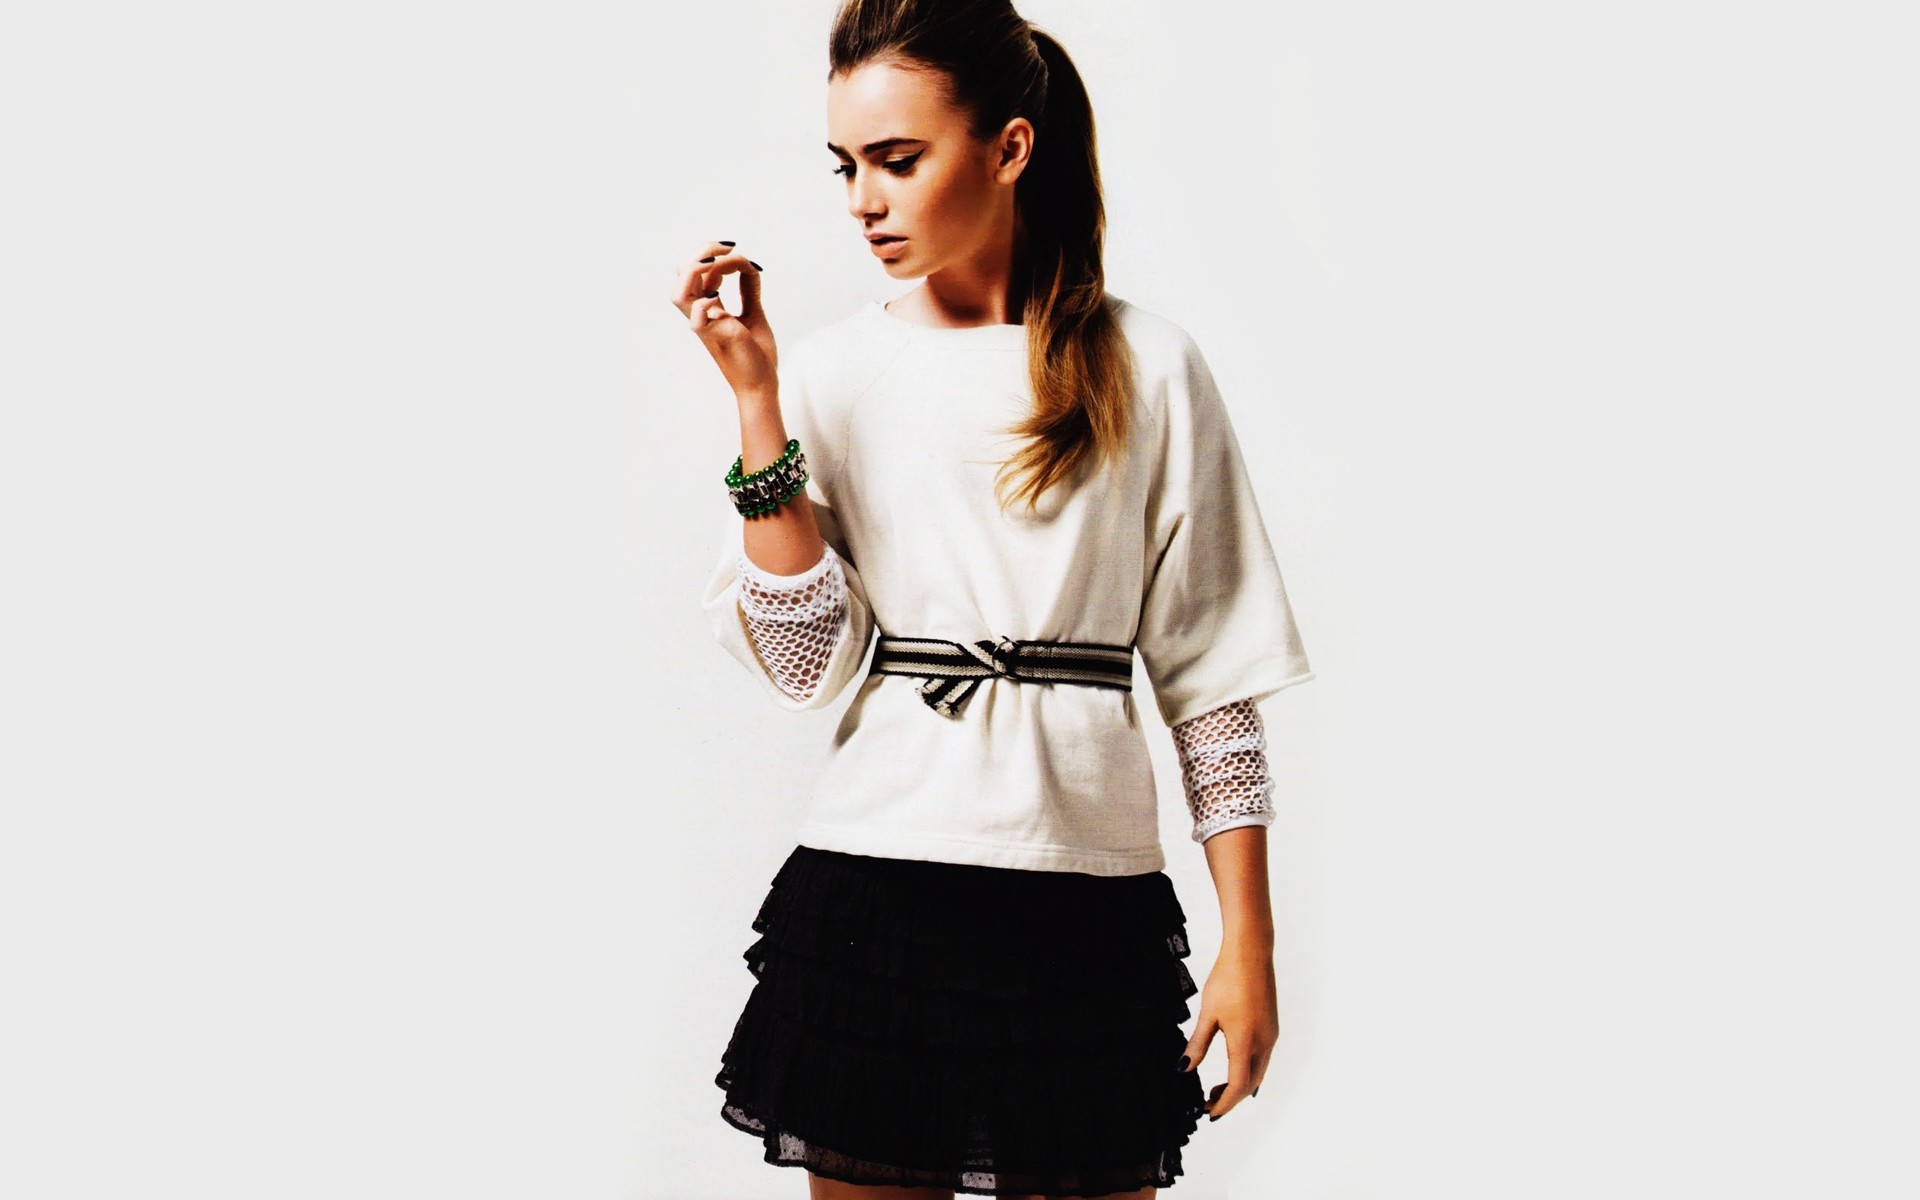 lily collins wallpaper 50816